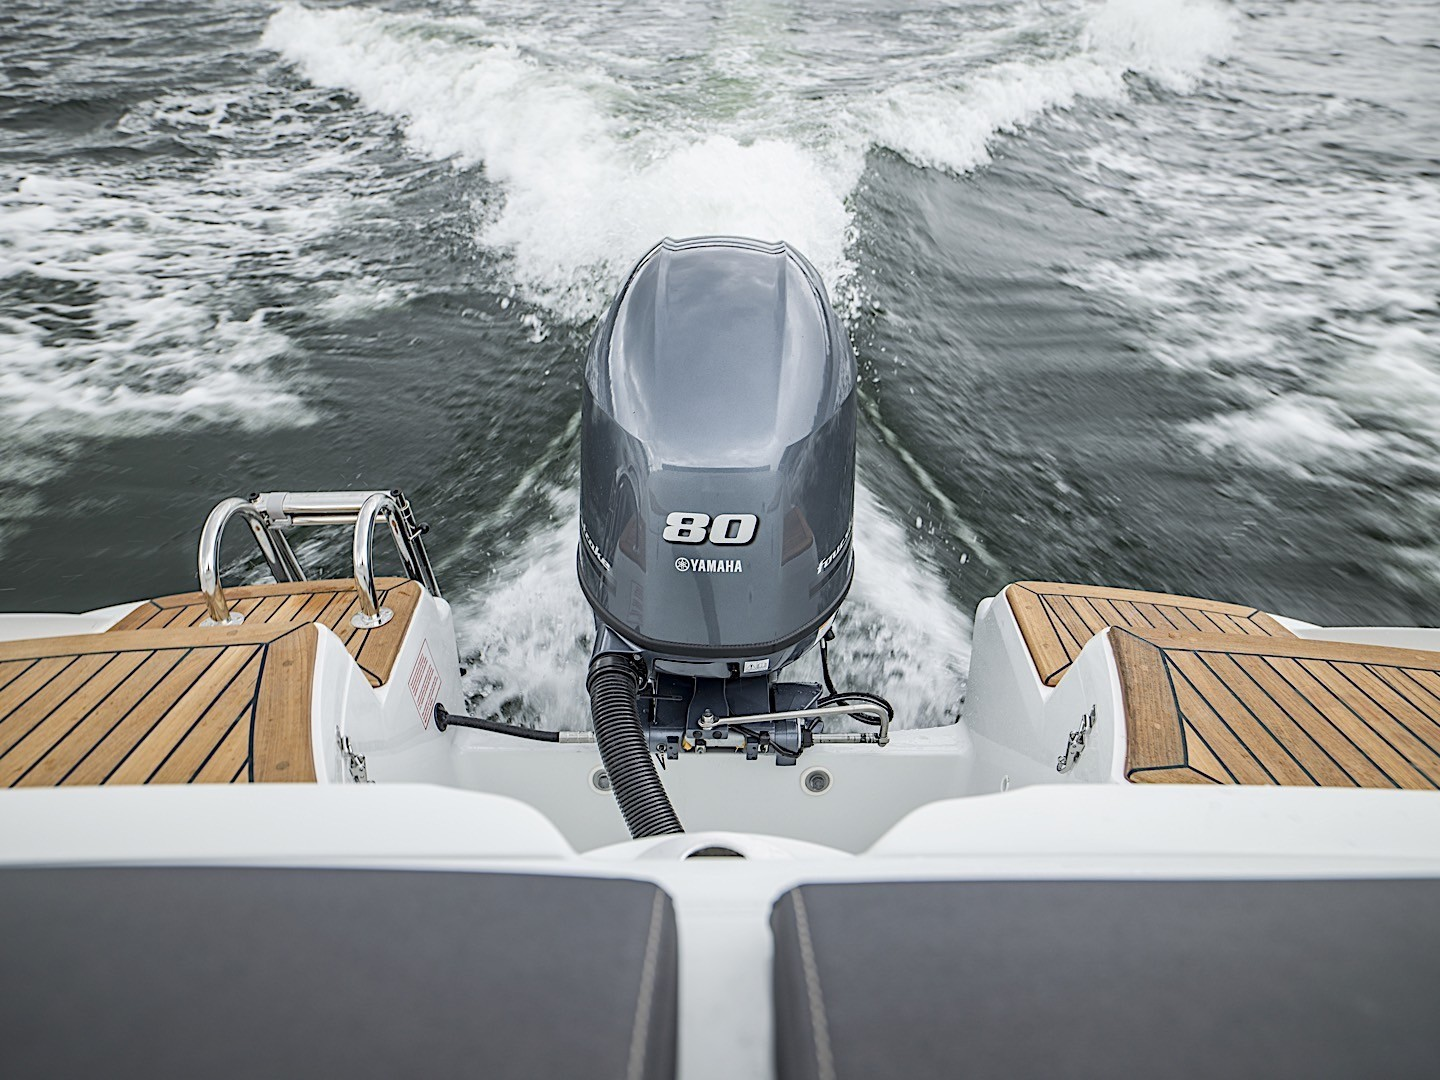 yamaha-reveals-new-more-powerful-f80-boat-engine_11